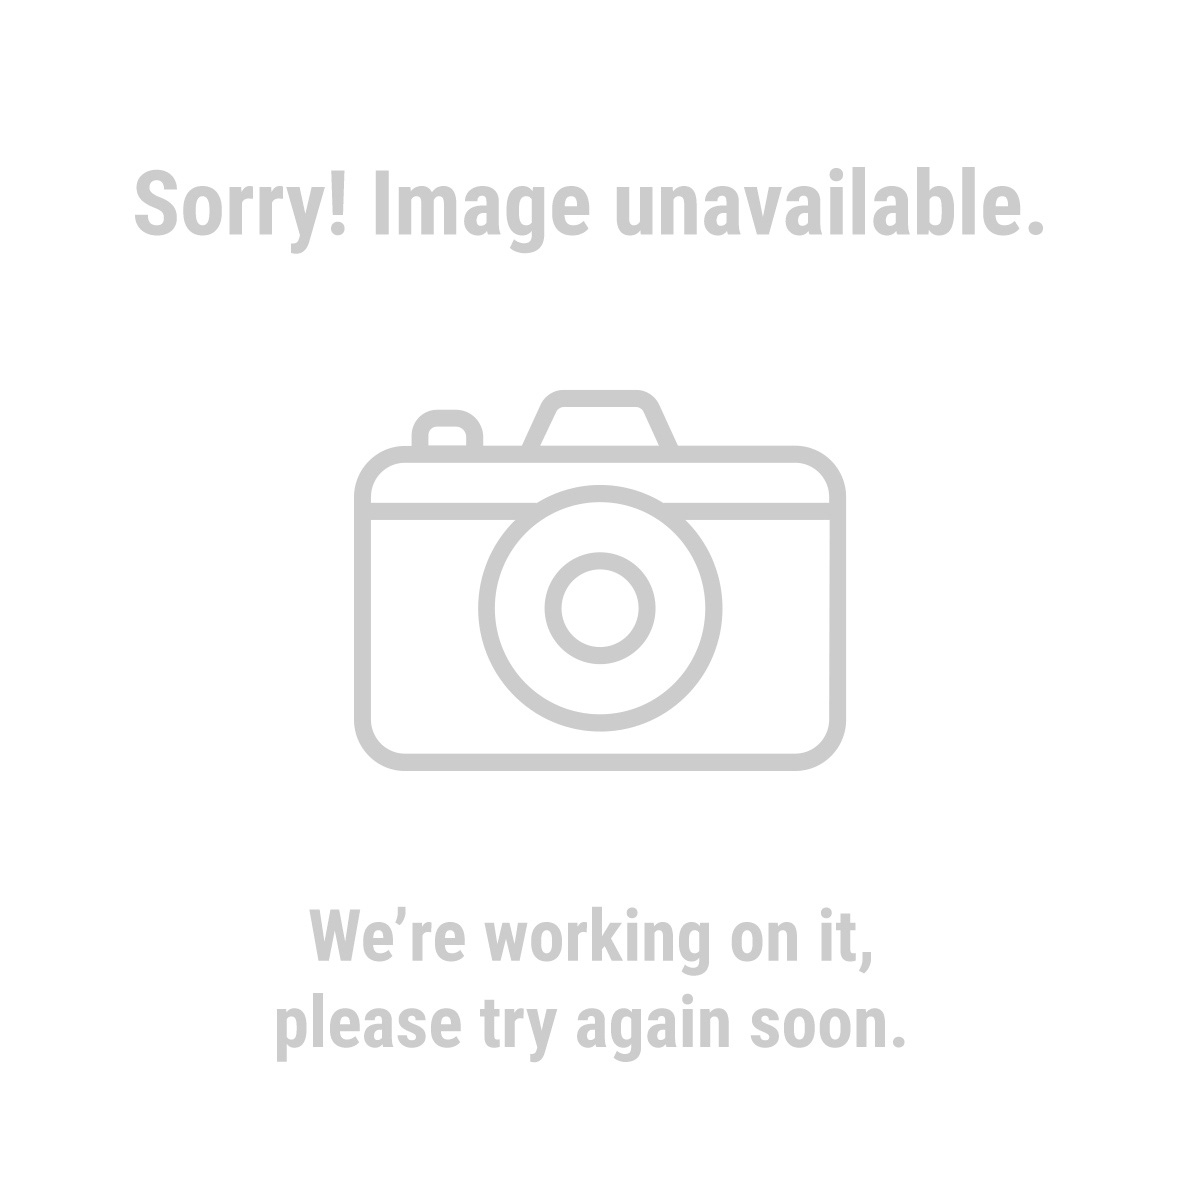 Central Pneumatic® 68019 18 Gauge 2-in-1 Nailer/Stapler